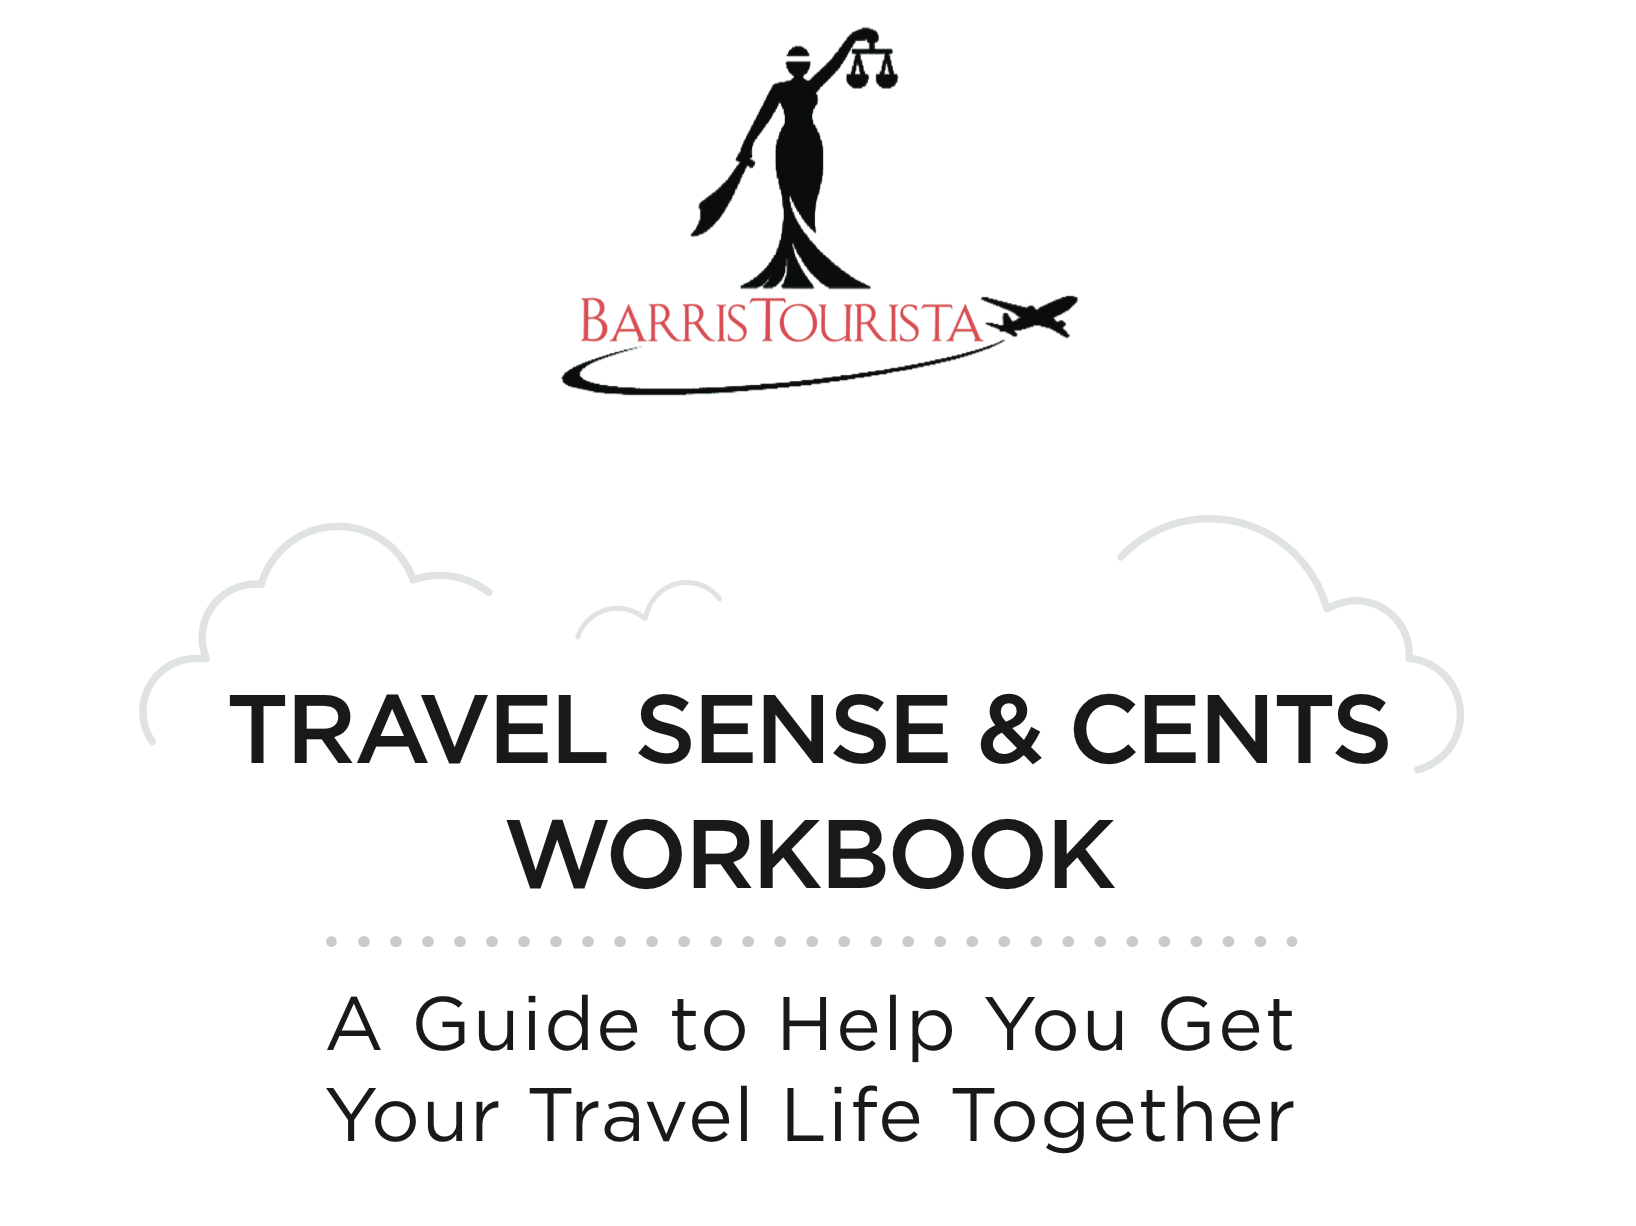 Travel Sense & Cents Workbook BarrisTourista